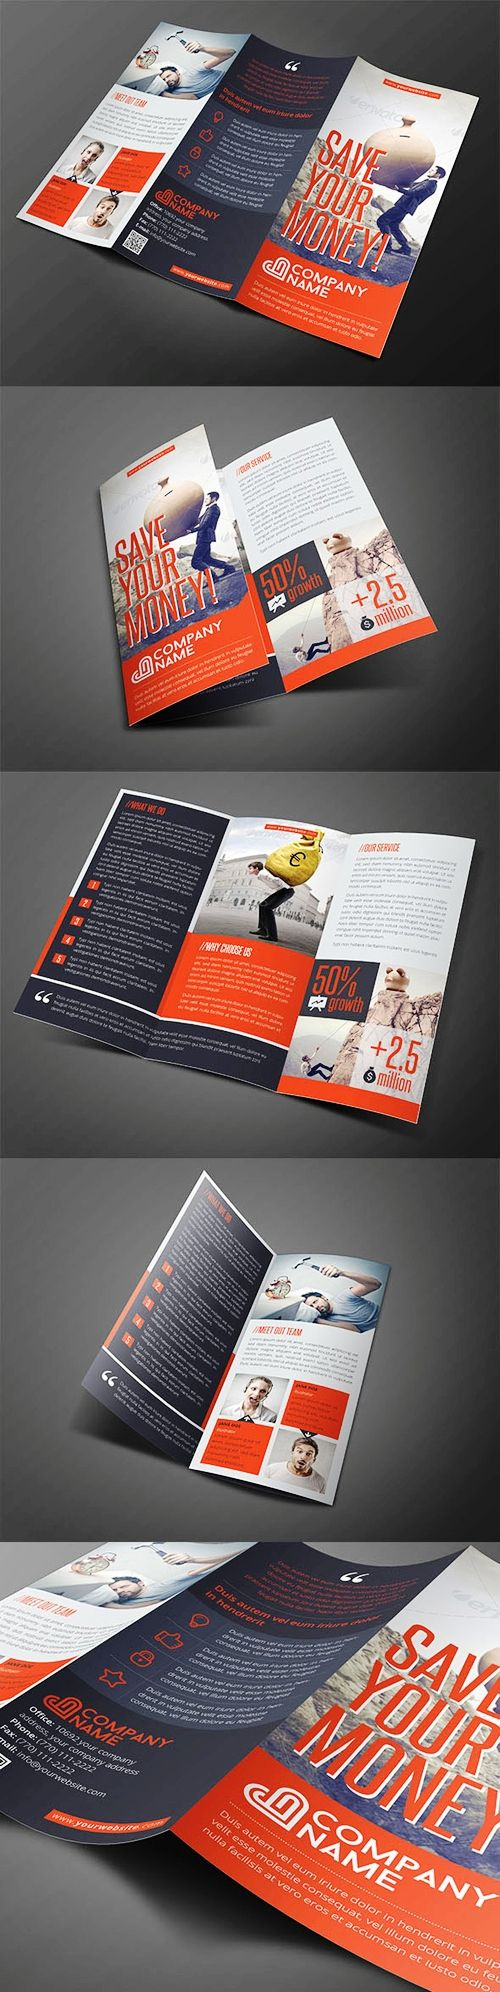 57 best brochure design images on pinterest brochures editorial get your attractive and professional real estate brochure design within 24 hours https solutioingenieria Choice Image